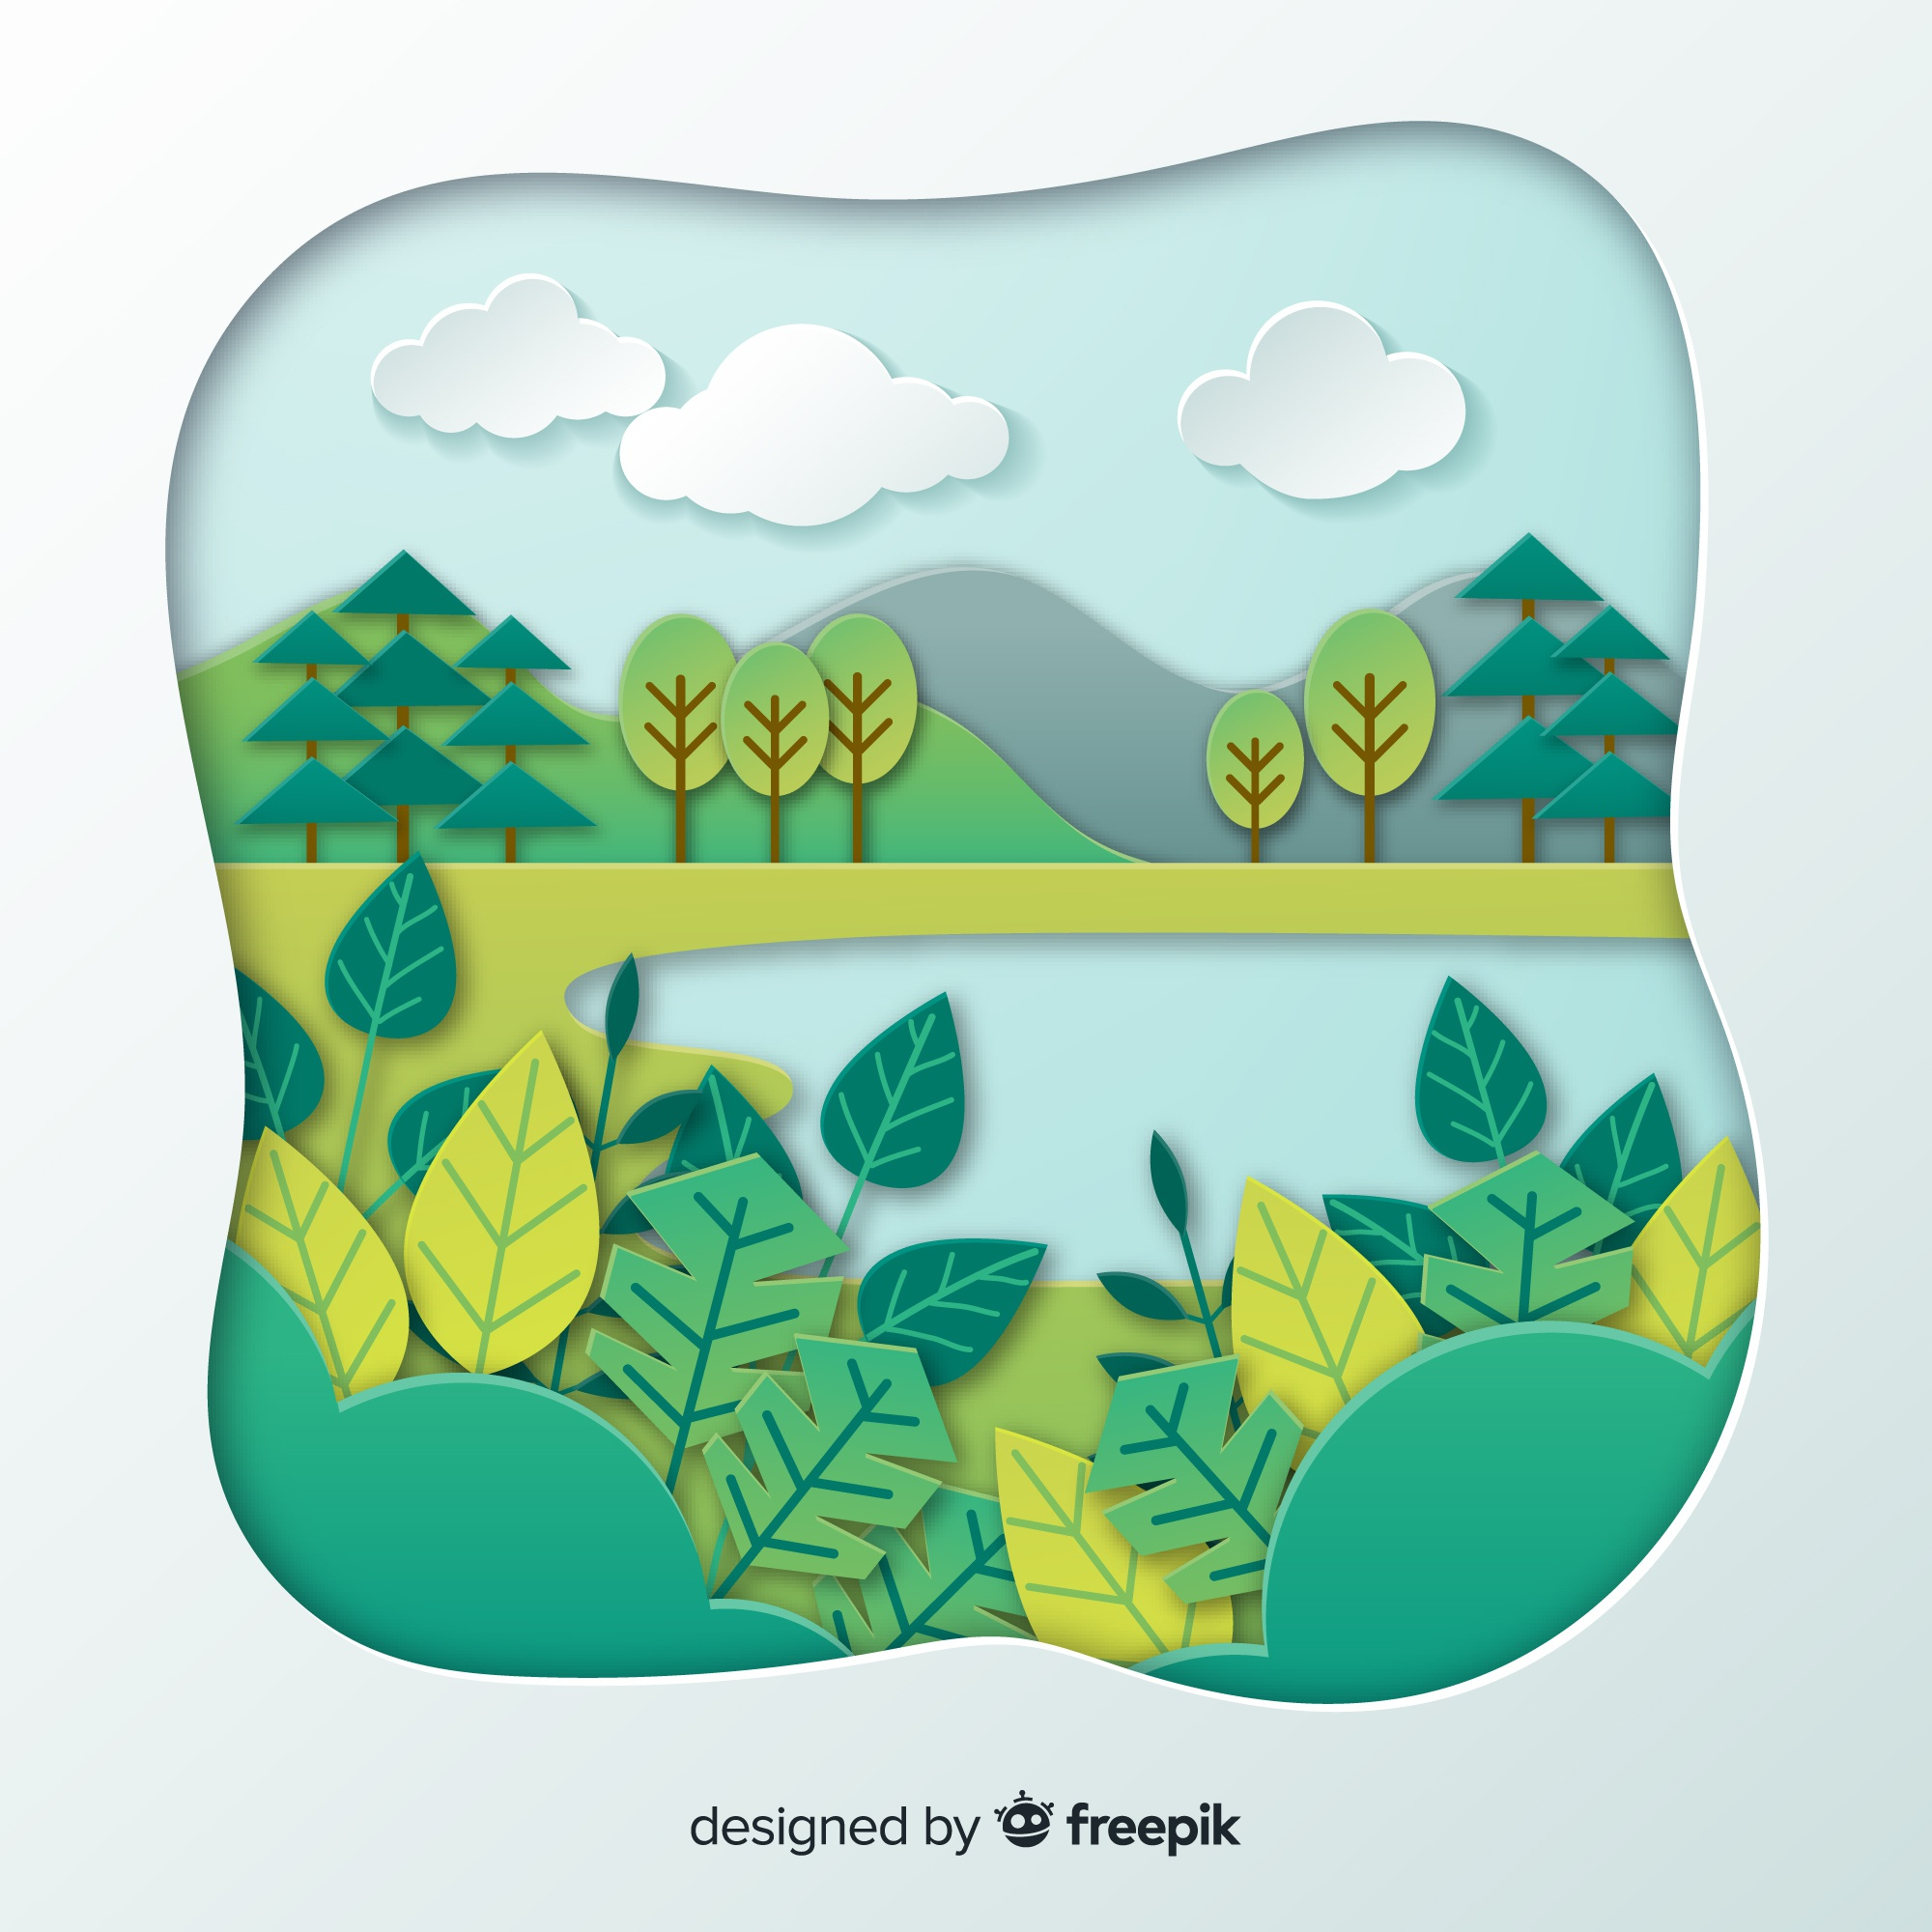 Ecosystem and nature concept